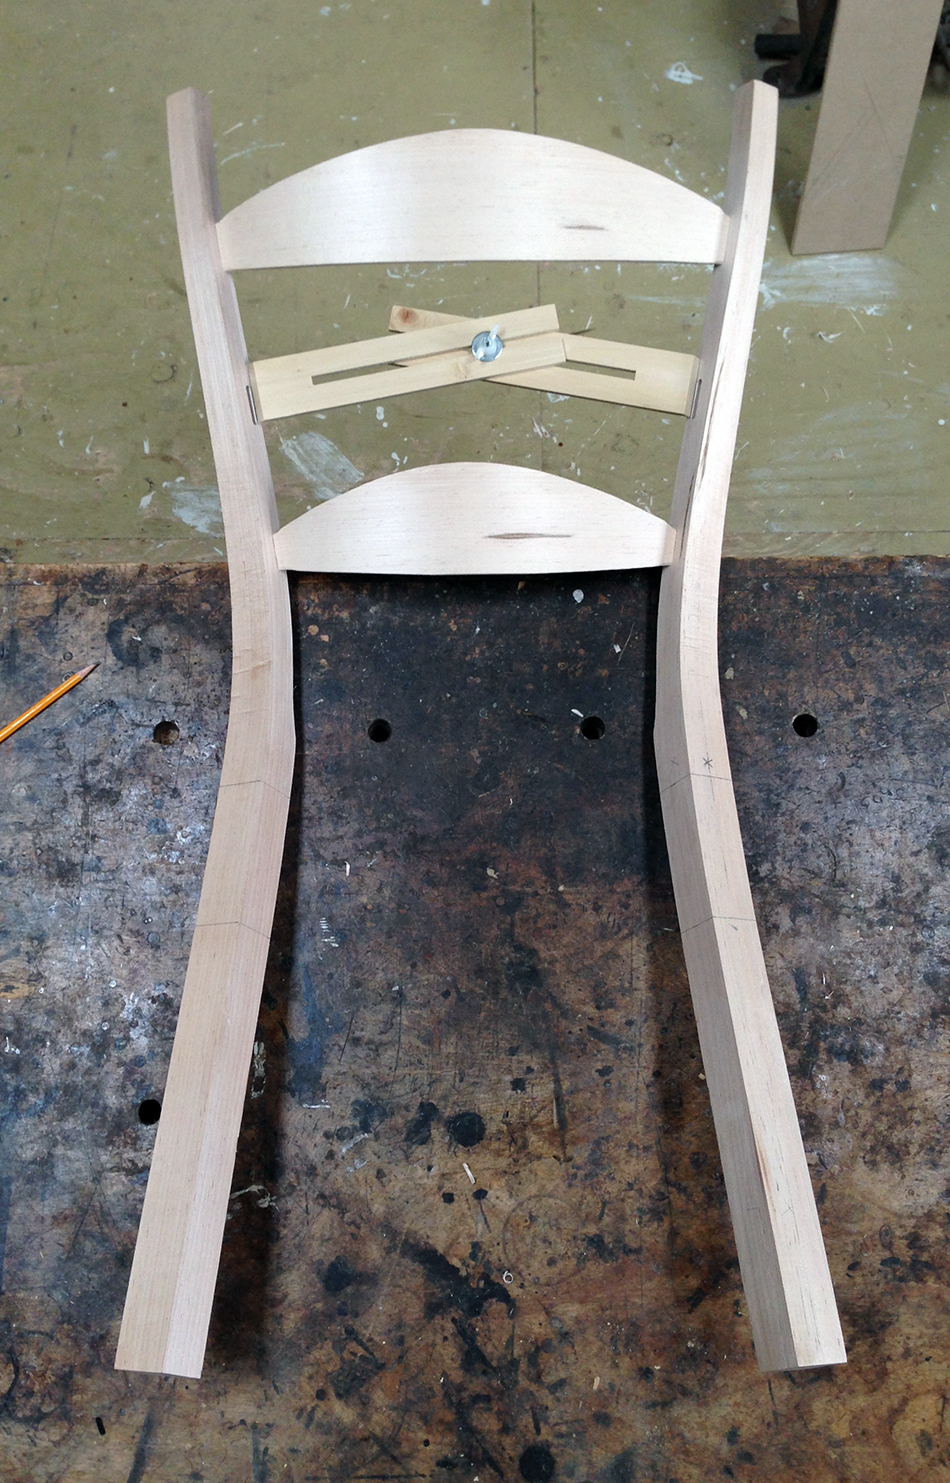 Fitting Slats: Using the measuring jig to measure for the middle slat